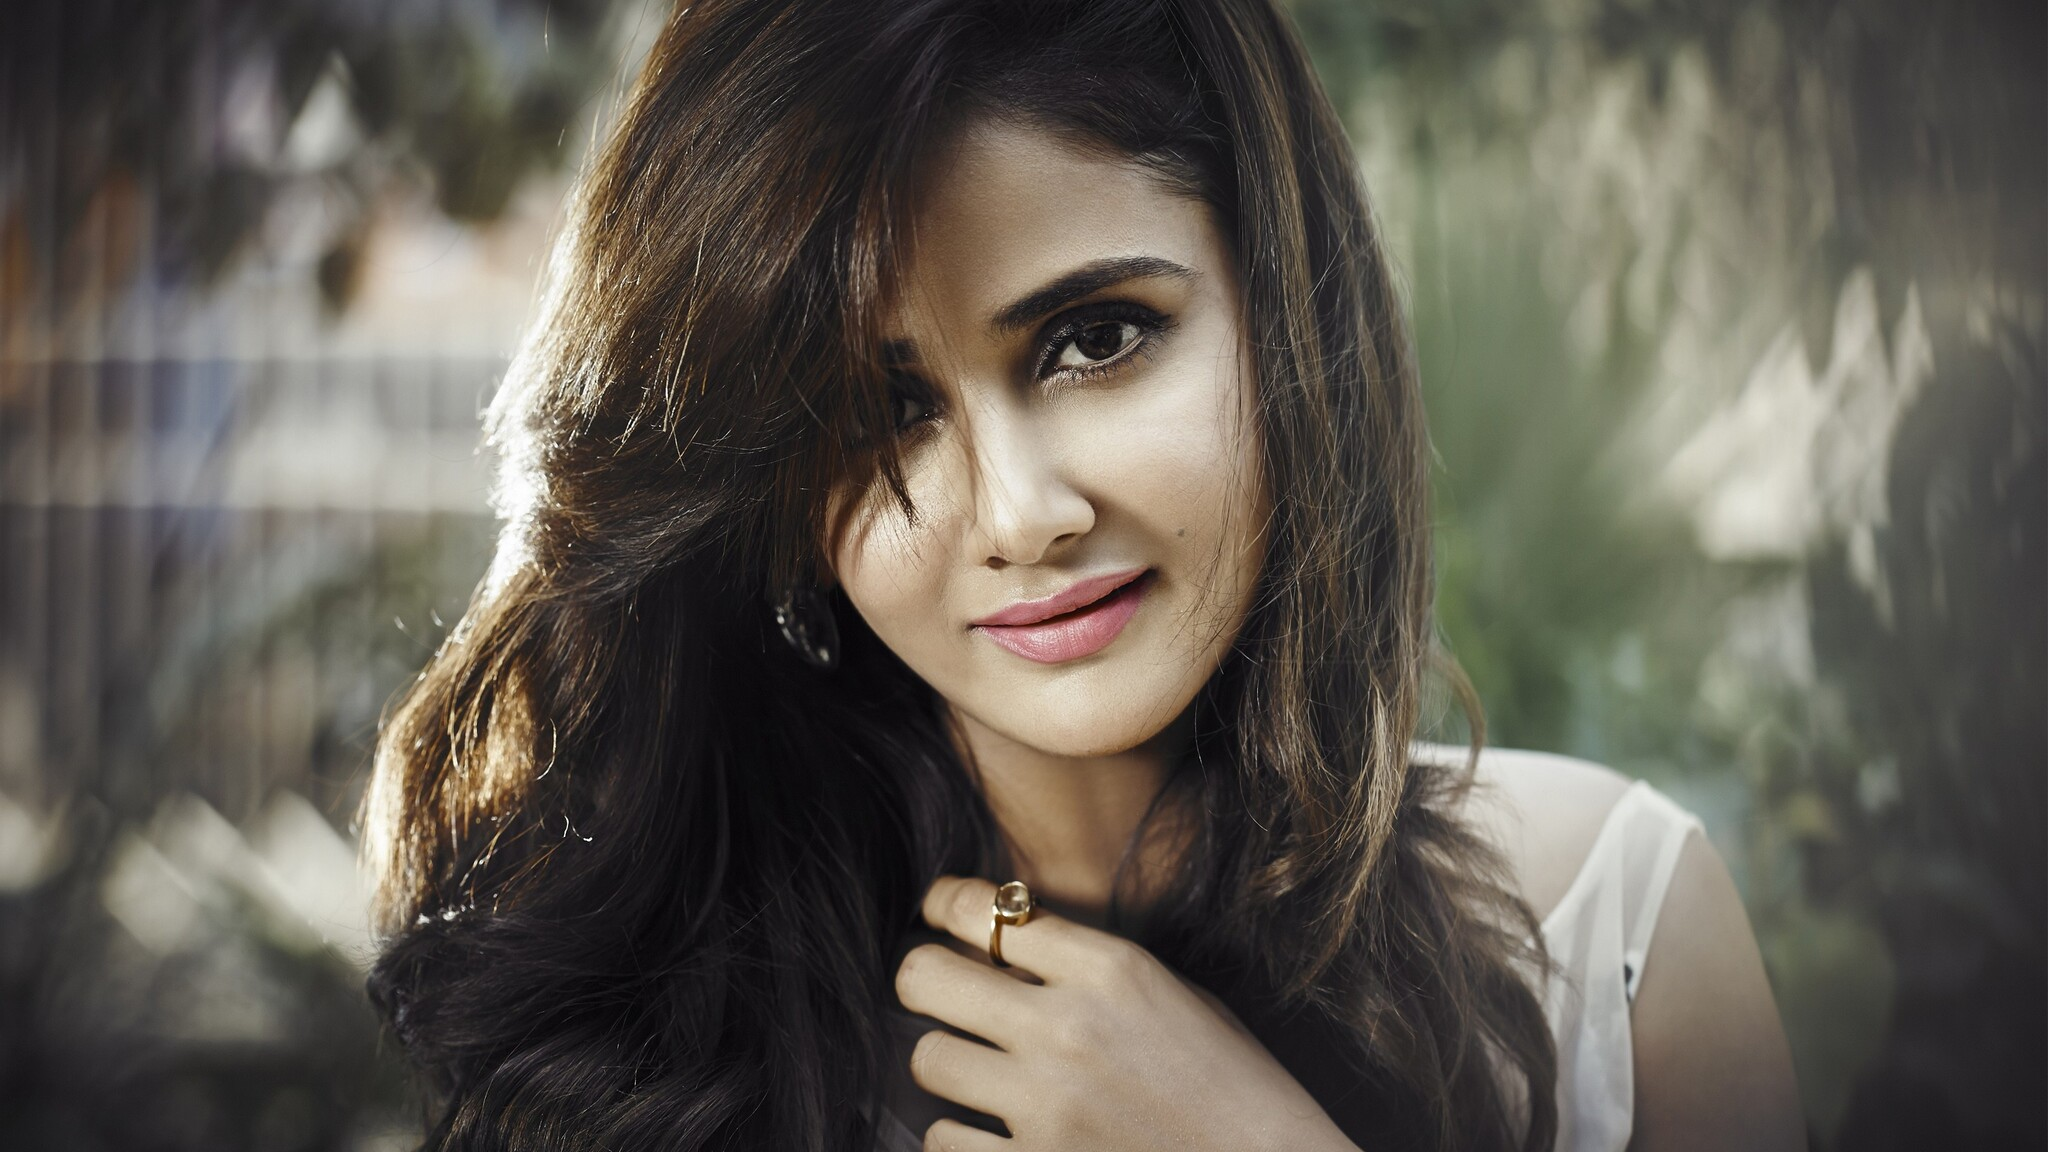 2048x1152 parul yadav 2048x1152 resolution hd 4k wallpapers, images